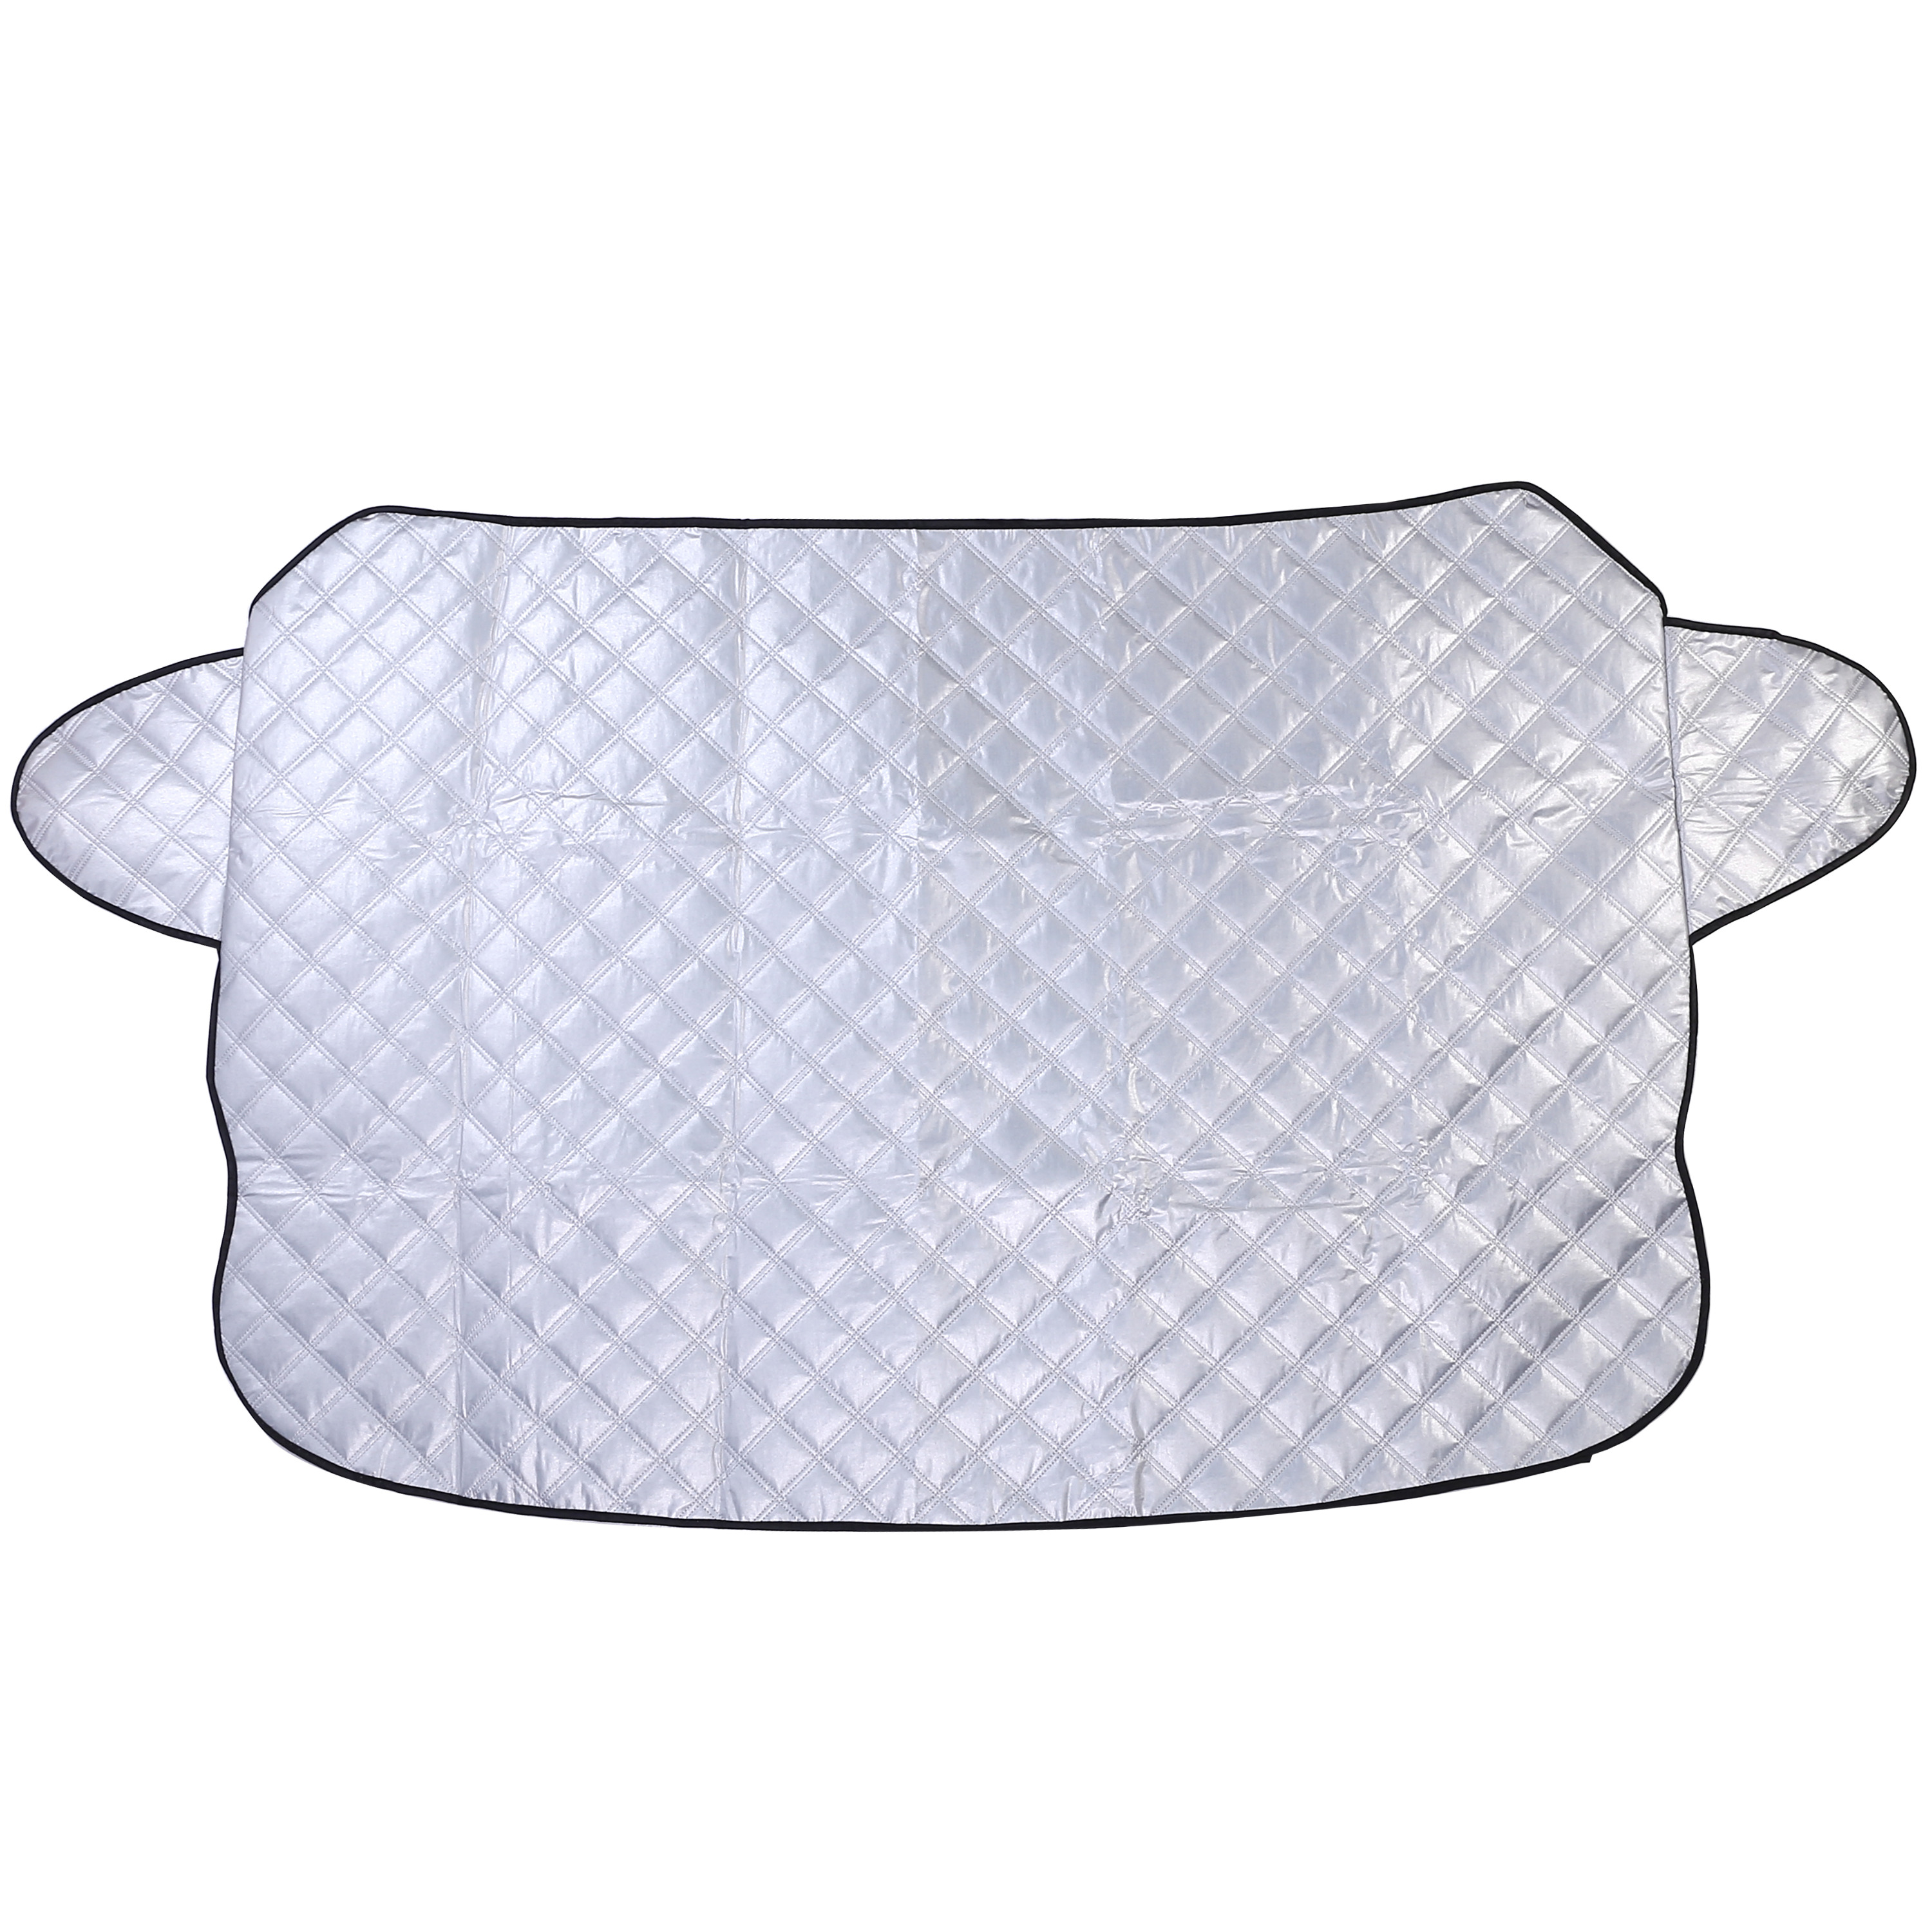 100*147CM Car Exterior Protection Snow Blocked Car Covers Snow Ice Protector Visor Sun Shade Windshield Cover Block Shields